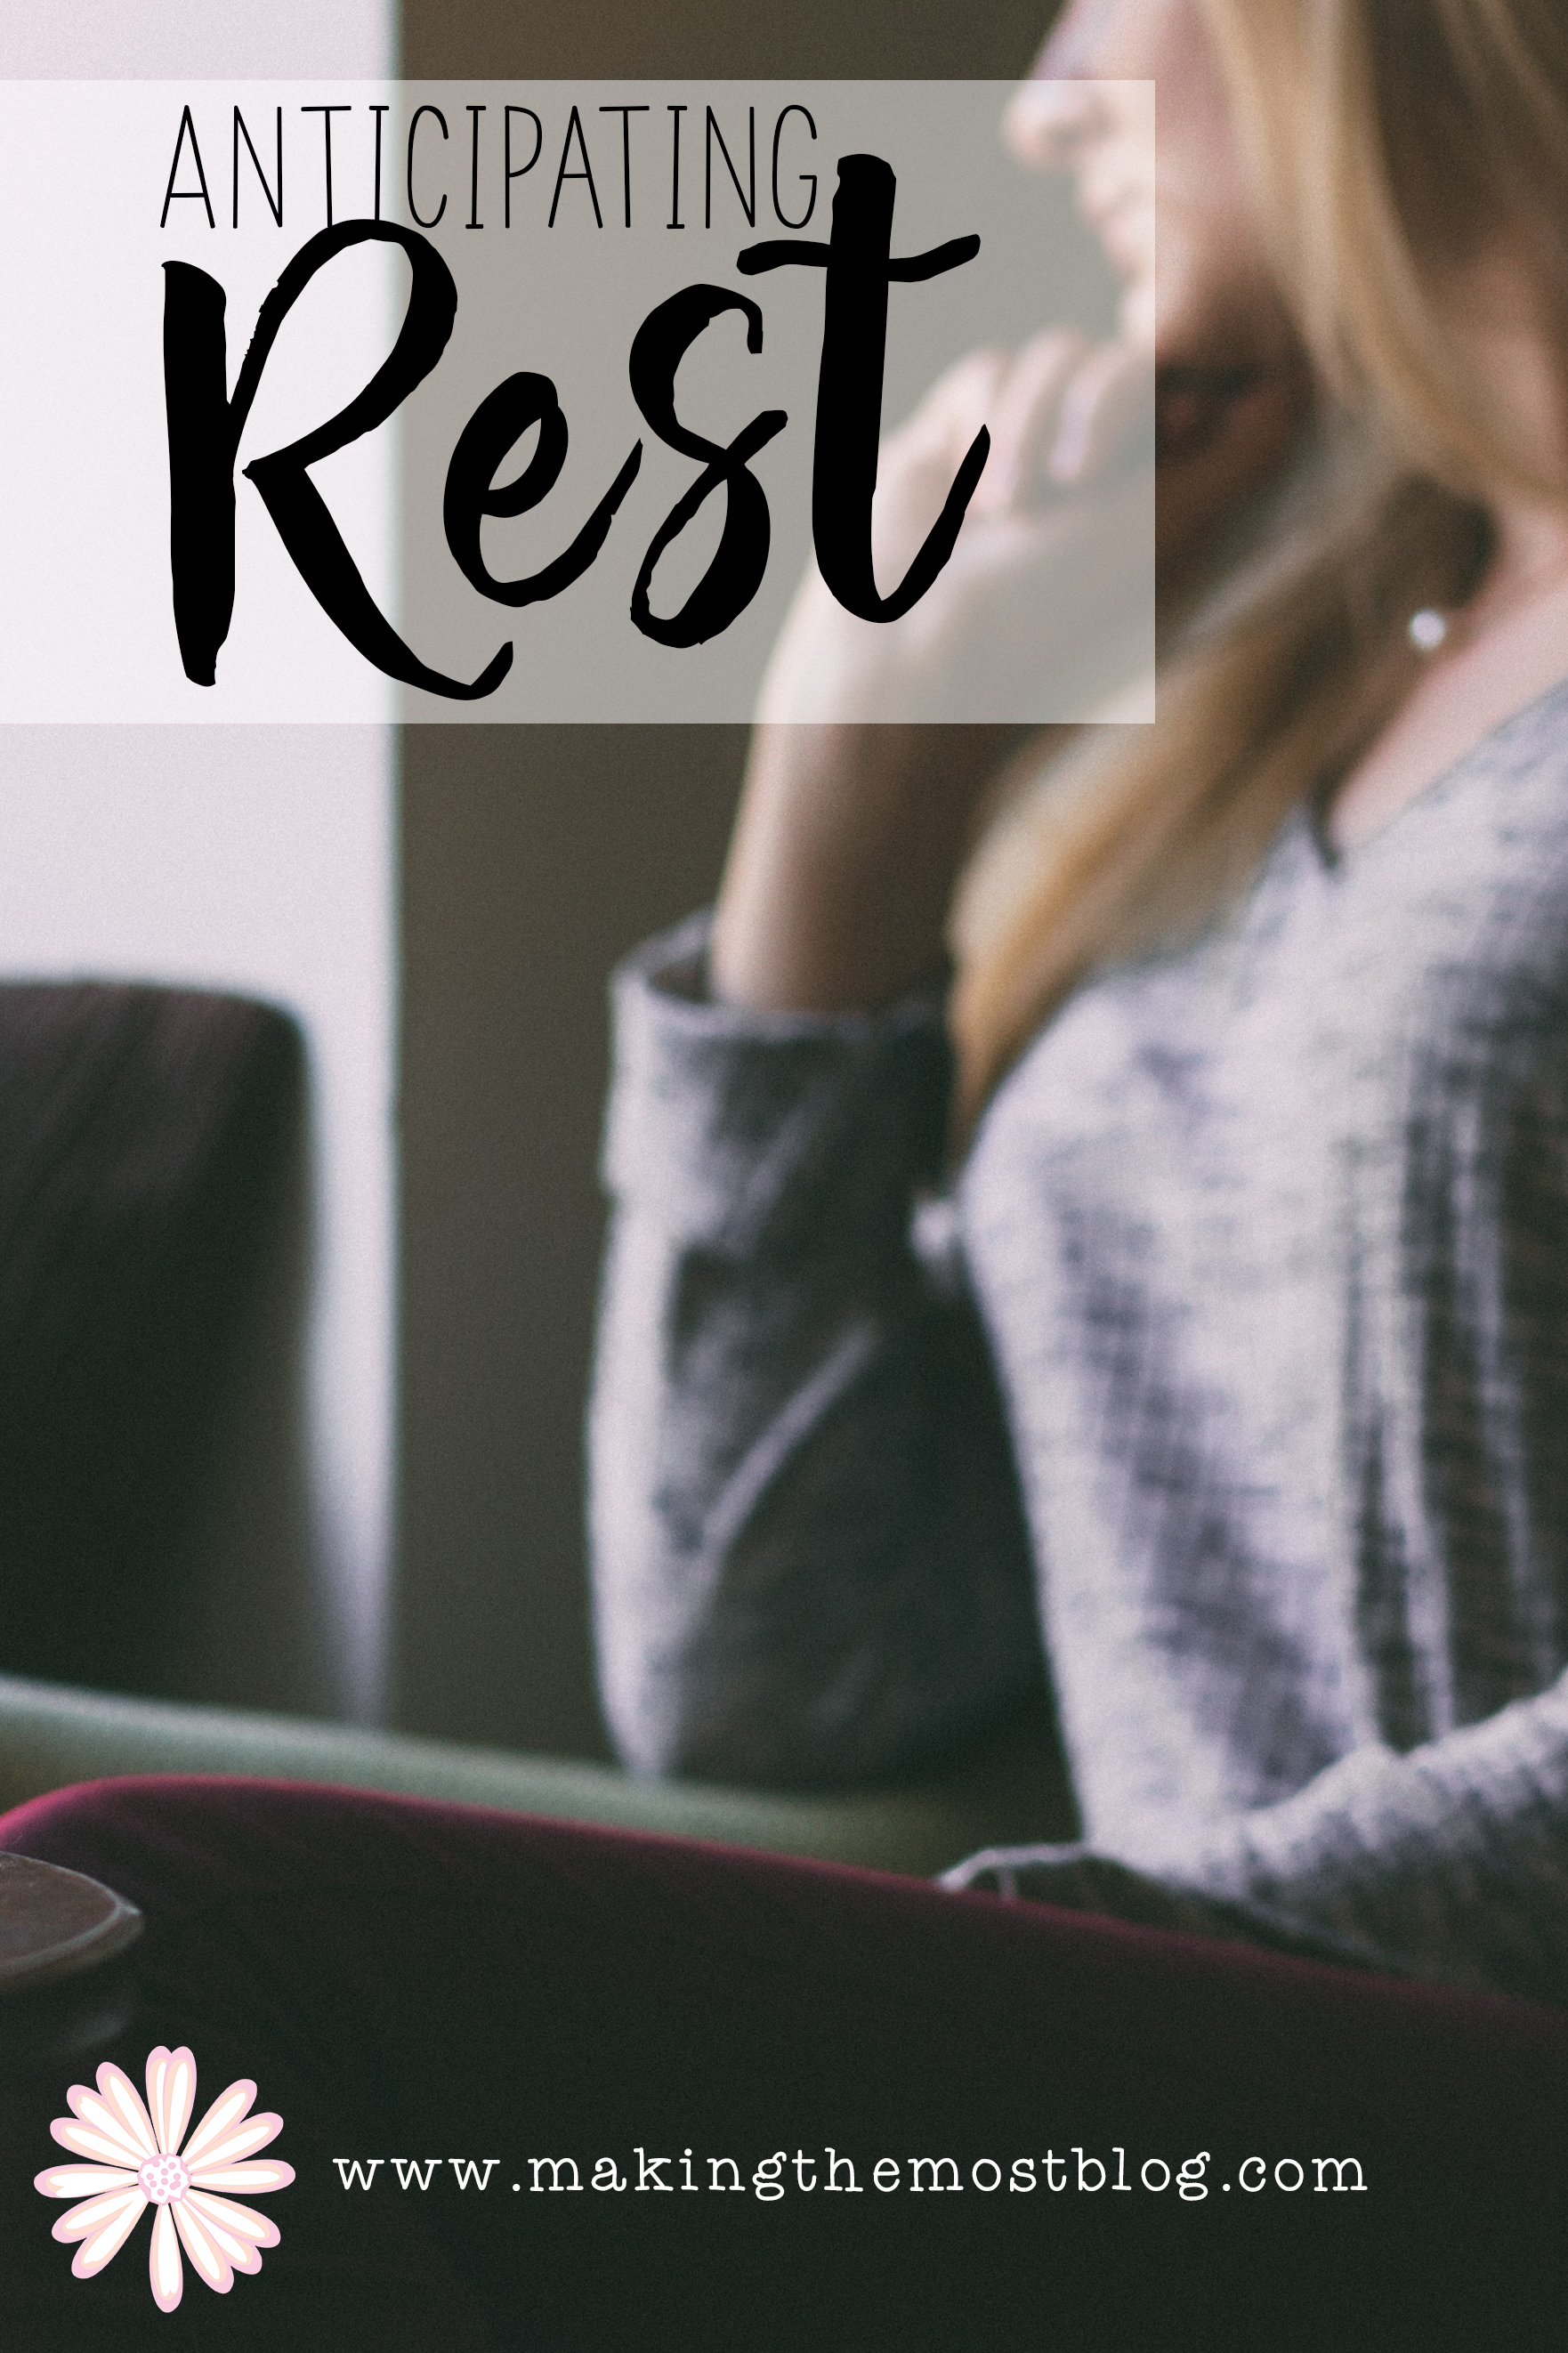 Anticipating Rest   Blog Post   Making The Most Blog